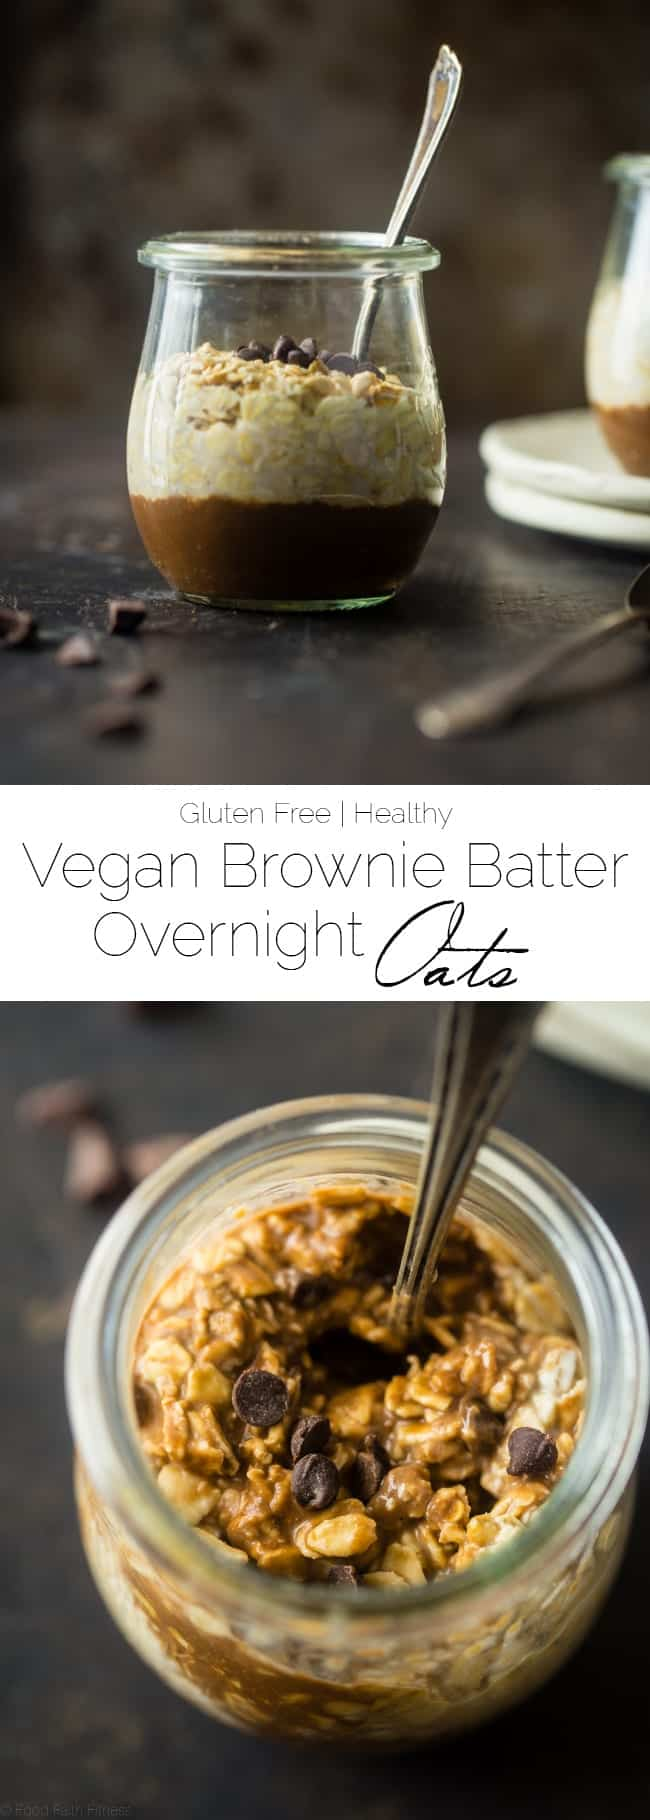 Vegan Brownie Batter Overnight Oats - These easy chocolate overnight oats taste like eating healthy, gluten free brownie batter for breakfast! They're a vegan-friendly breakfast that's ready in 10 minutes! | Foodfaithfitness.com | @FoodFaithFit